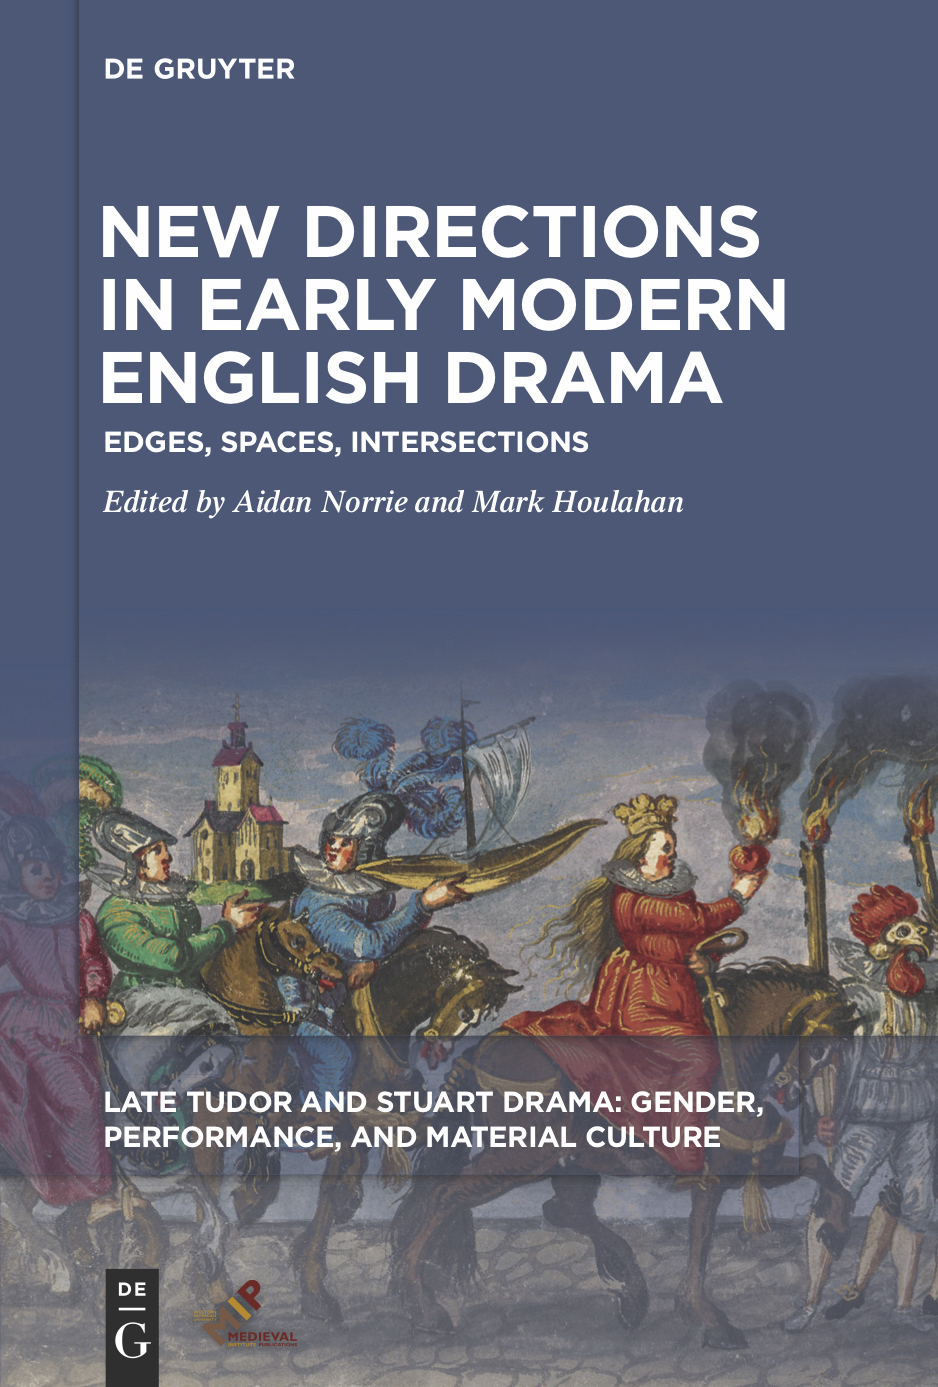 Book cover for New Directions in Early Modern English Drama: Edges, Spaces, Intersections